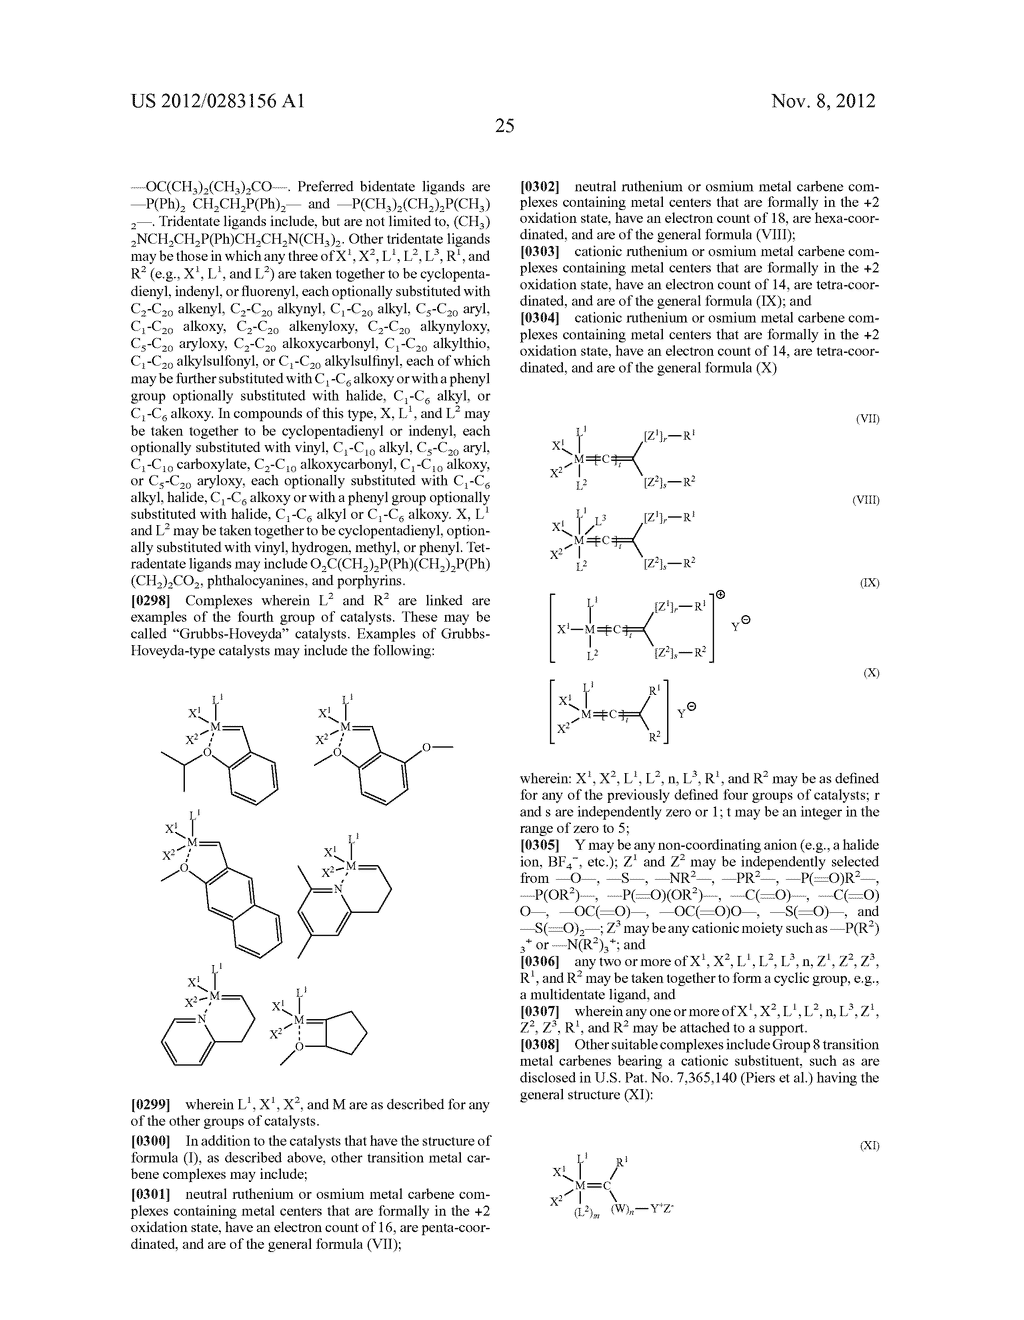 FUNCTIONALIZED MONOMERS - diagram, schematic, and image 28